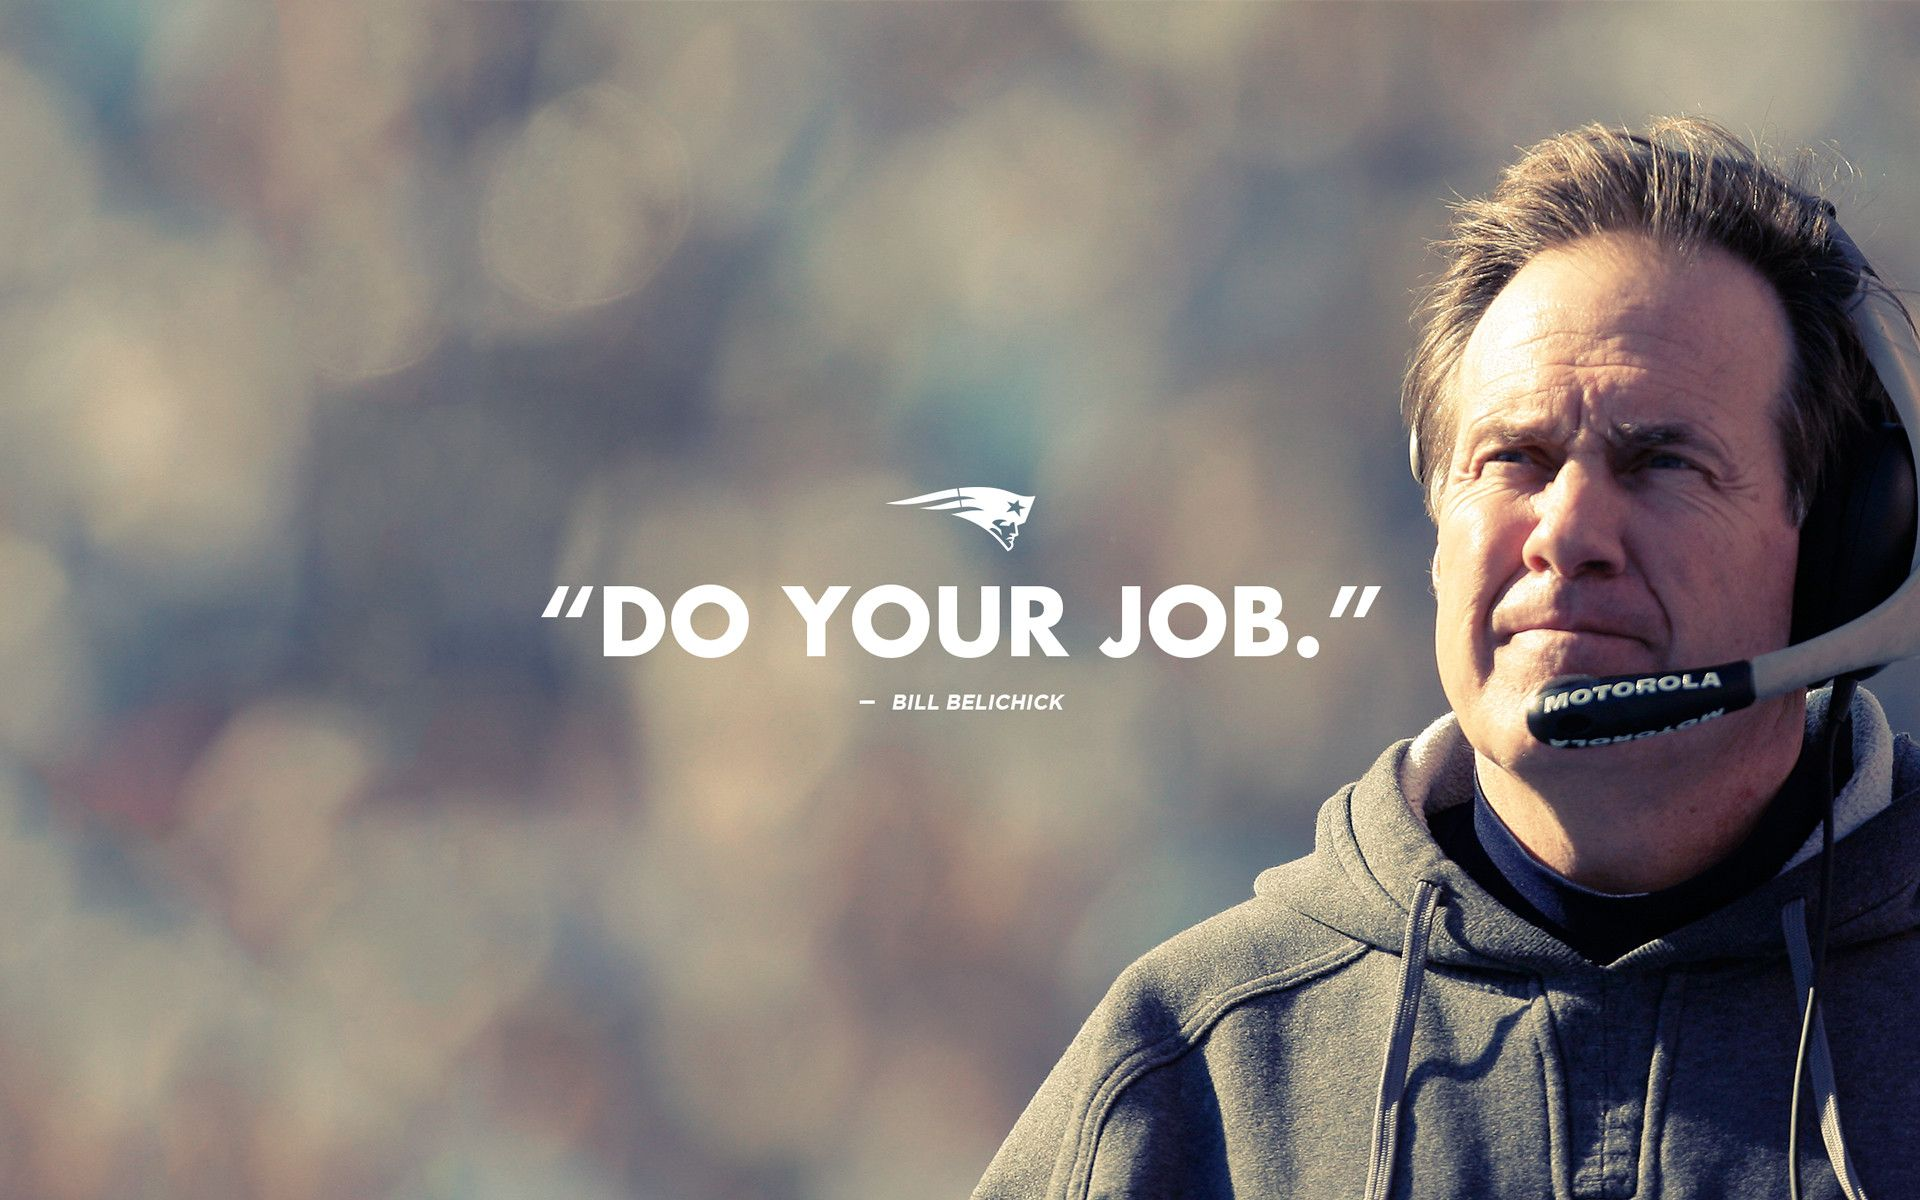 Bill belichick do your job pinnacle performance quotes